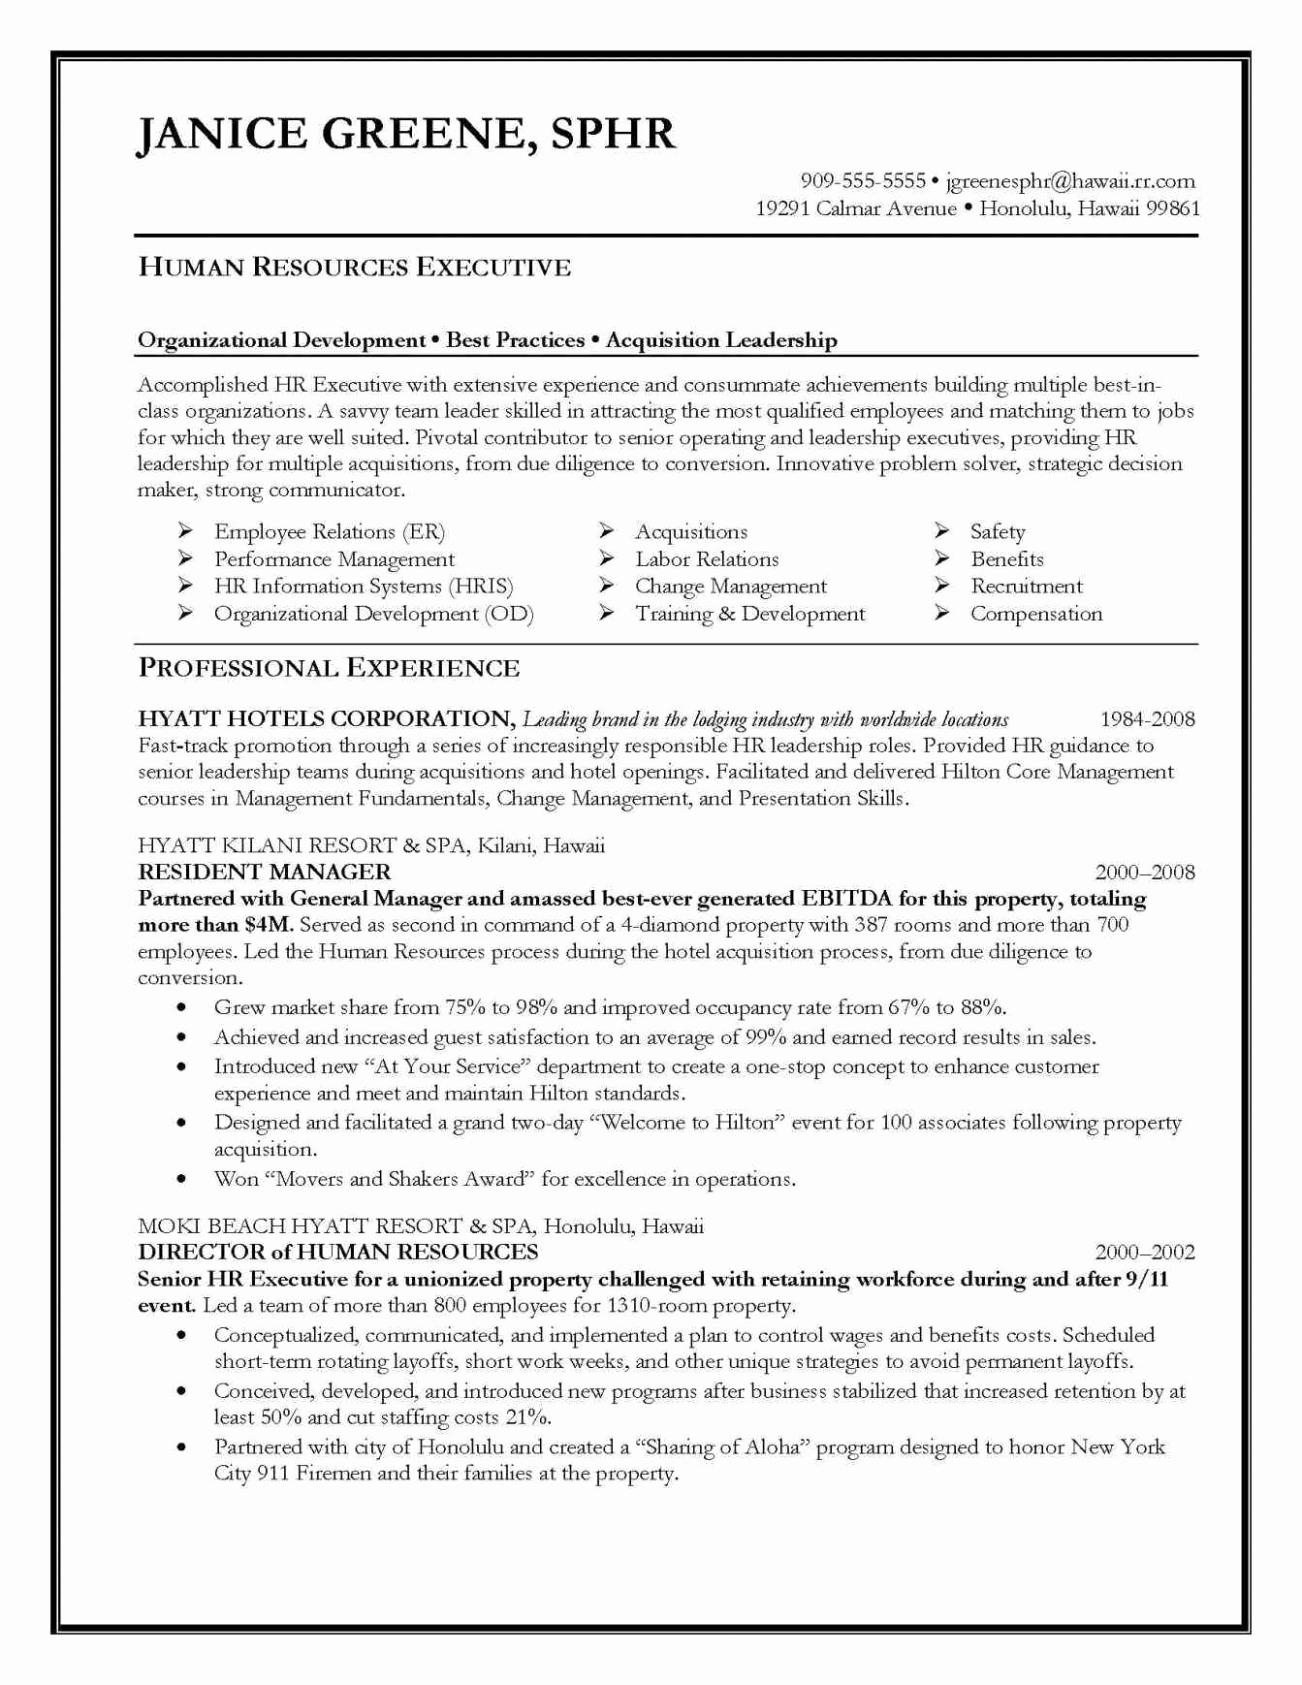 Career Change Resume Samples - Career Change Resume Sample Awesome Resume Objective Statement Entry